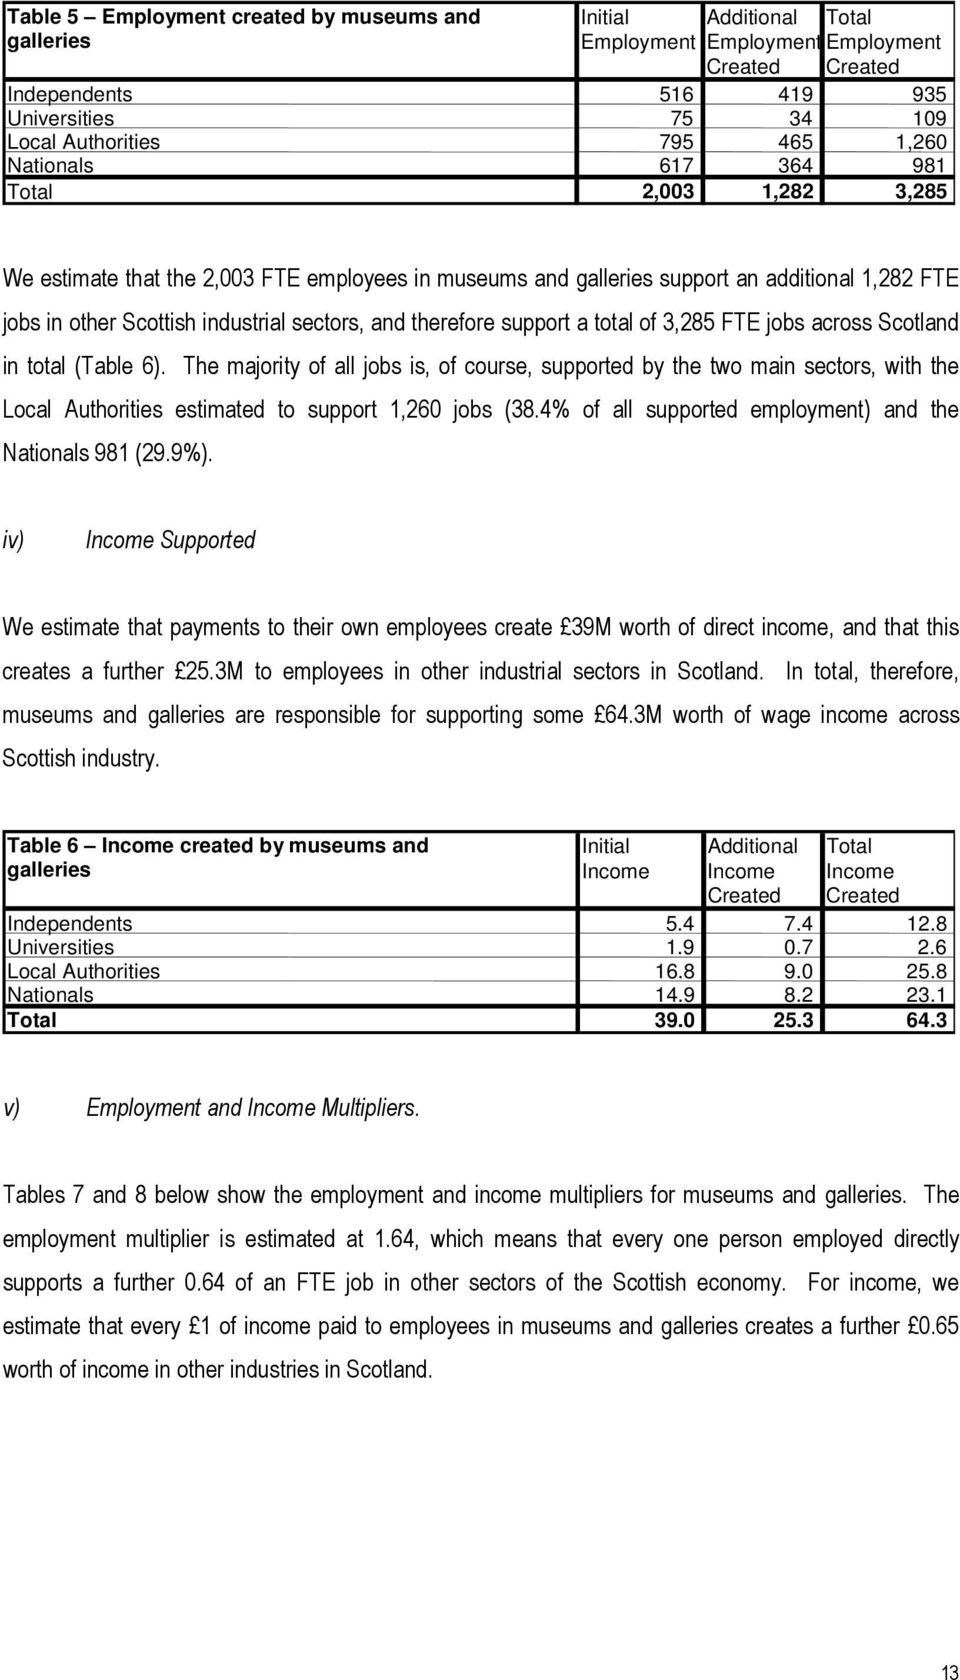 therefore support a total of 3,285 FTE jobs across Scotland in total (Table 6).